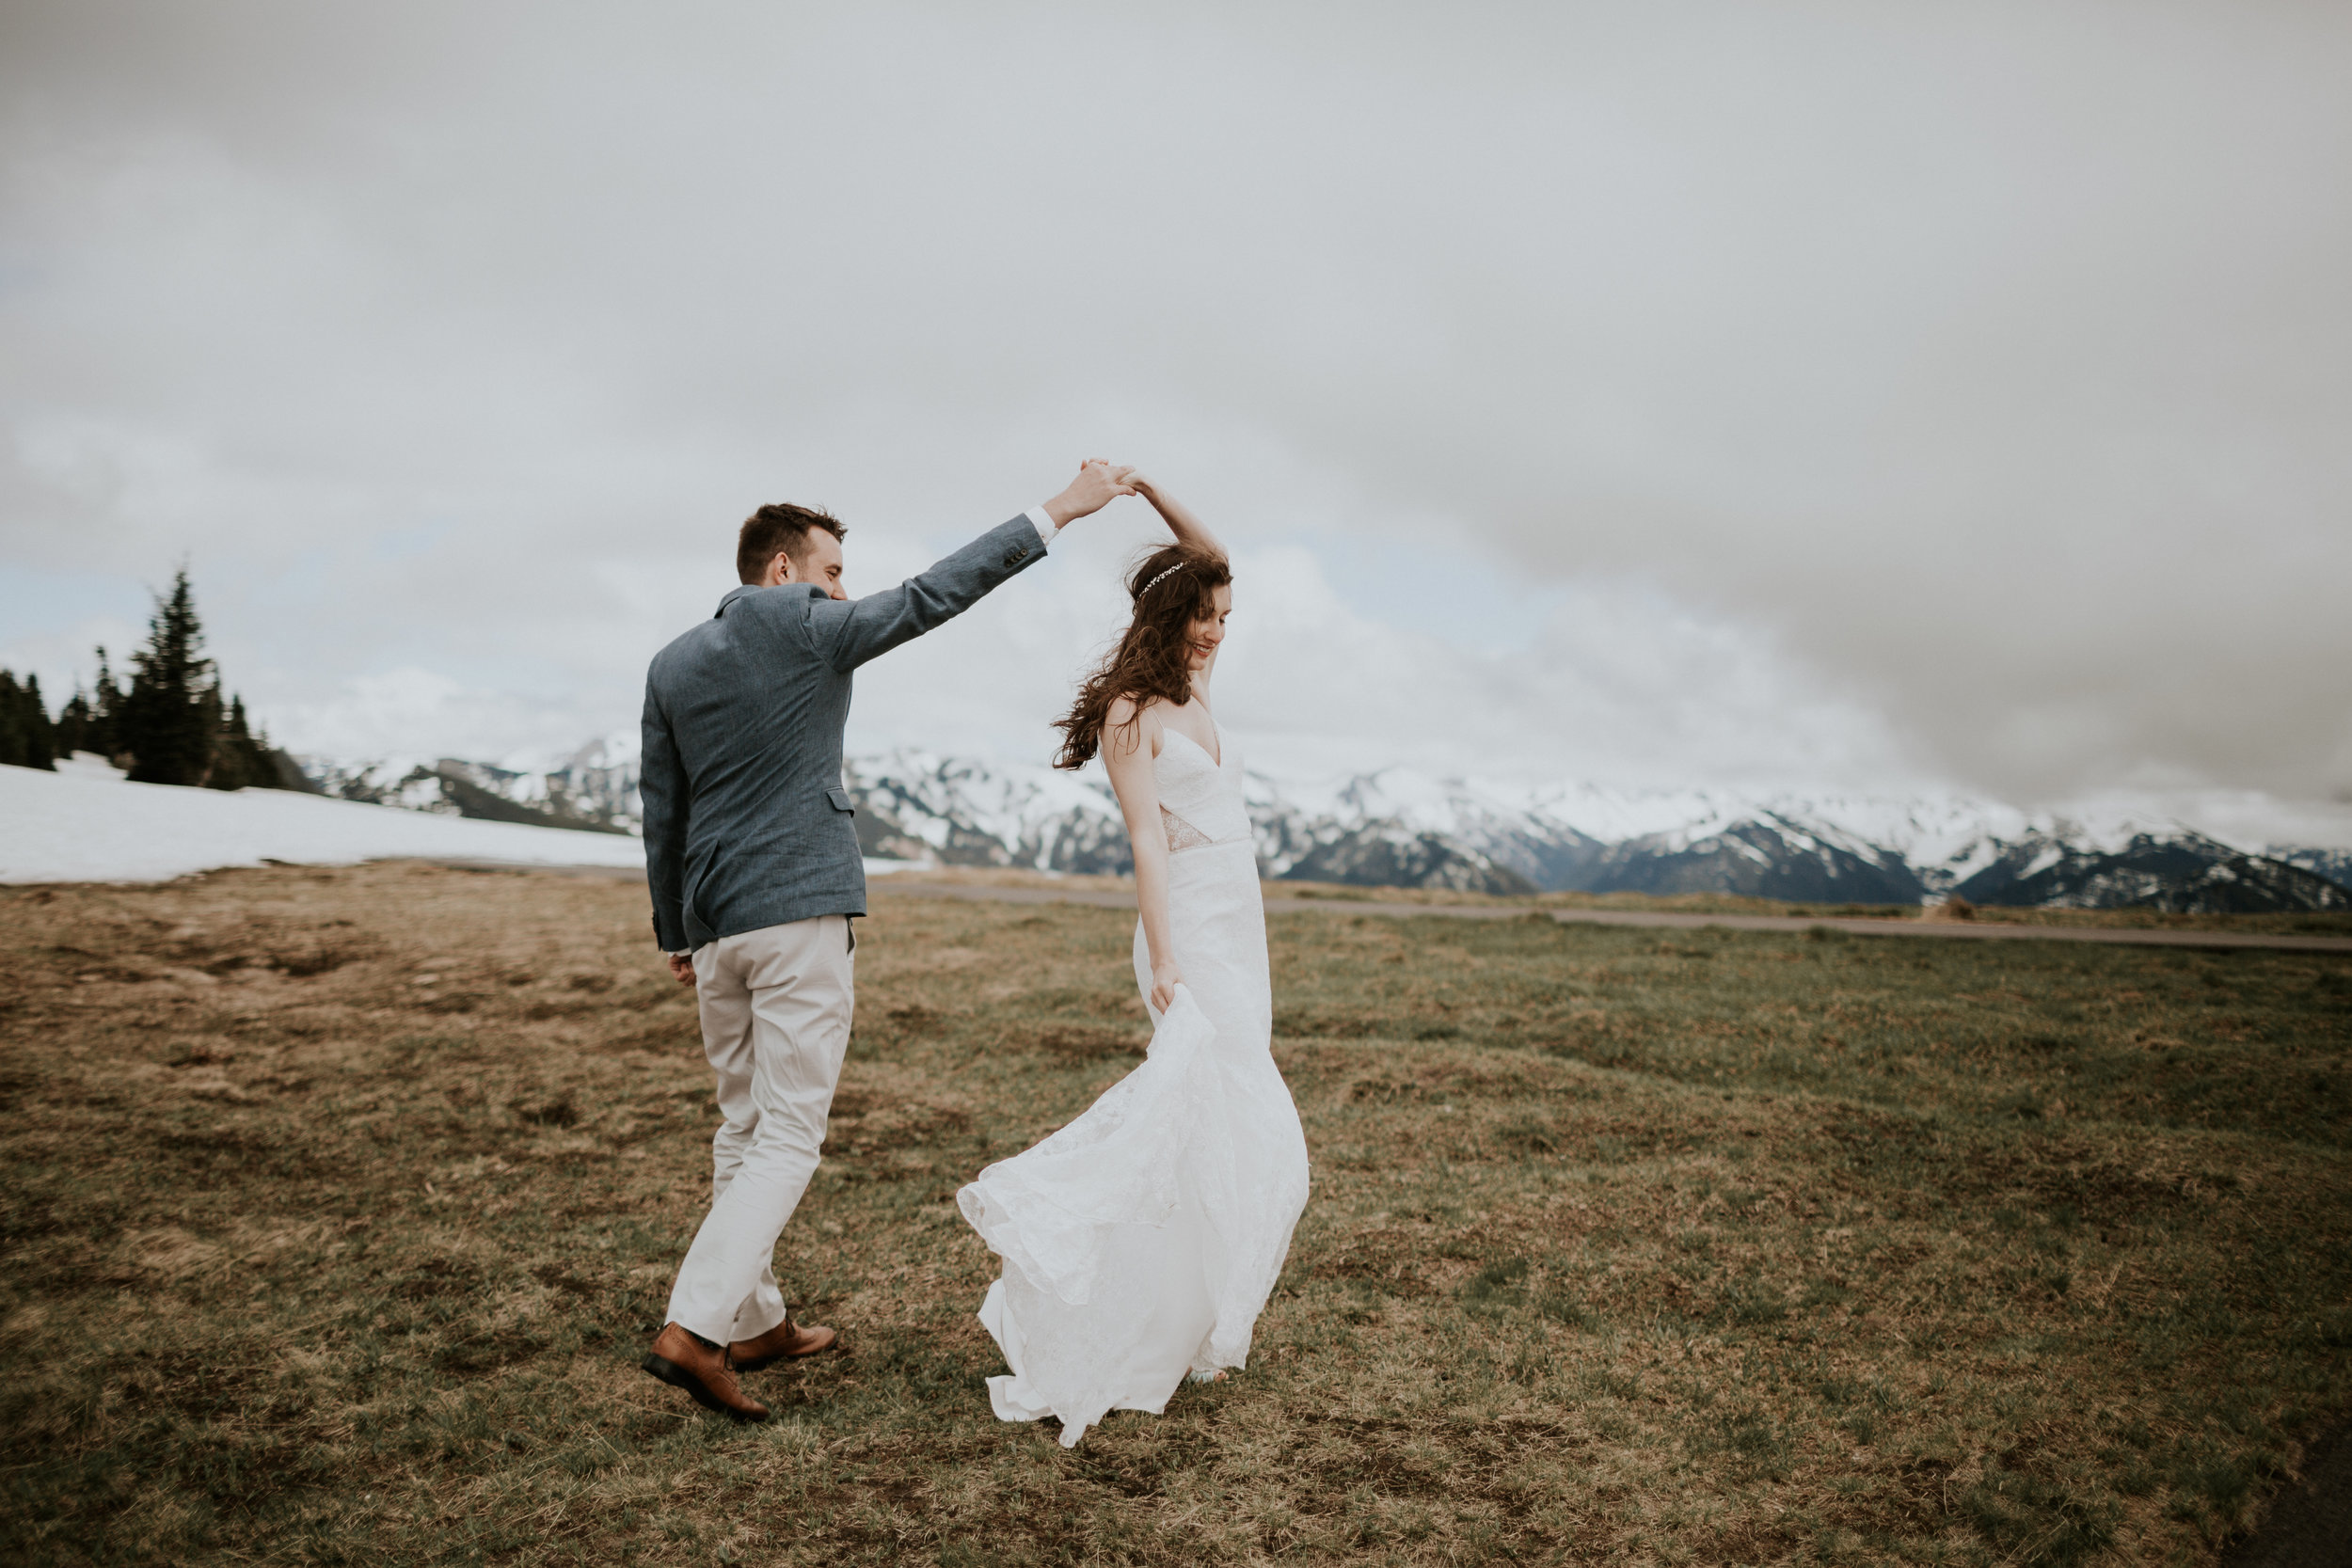 PNW-elopement-wedding-engagement-olympic national park-port angeles-hurricane ridge-lake crescent-kayla dawn photography- photographer-photography-kayladawnphoto-185.jpg